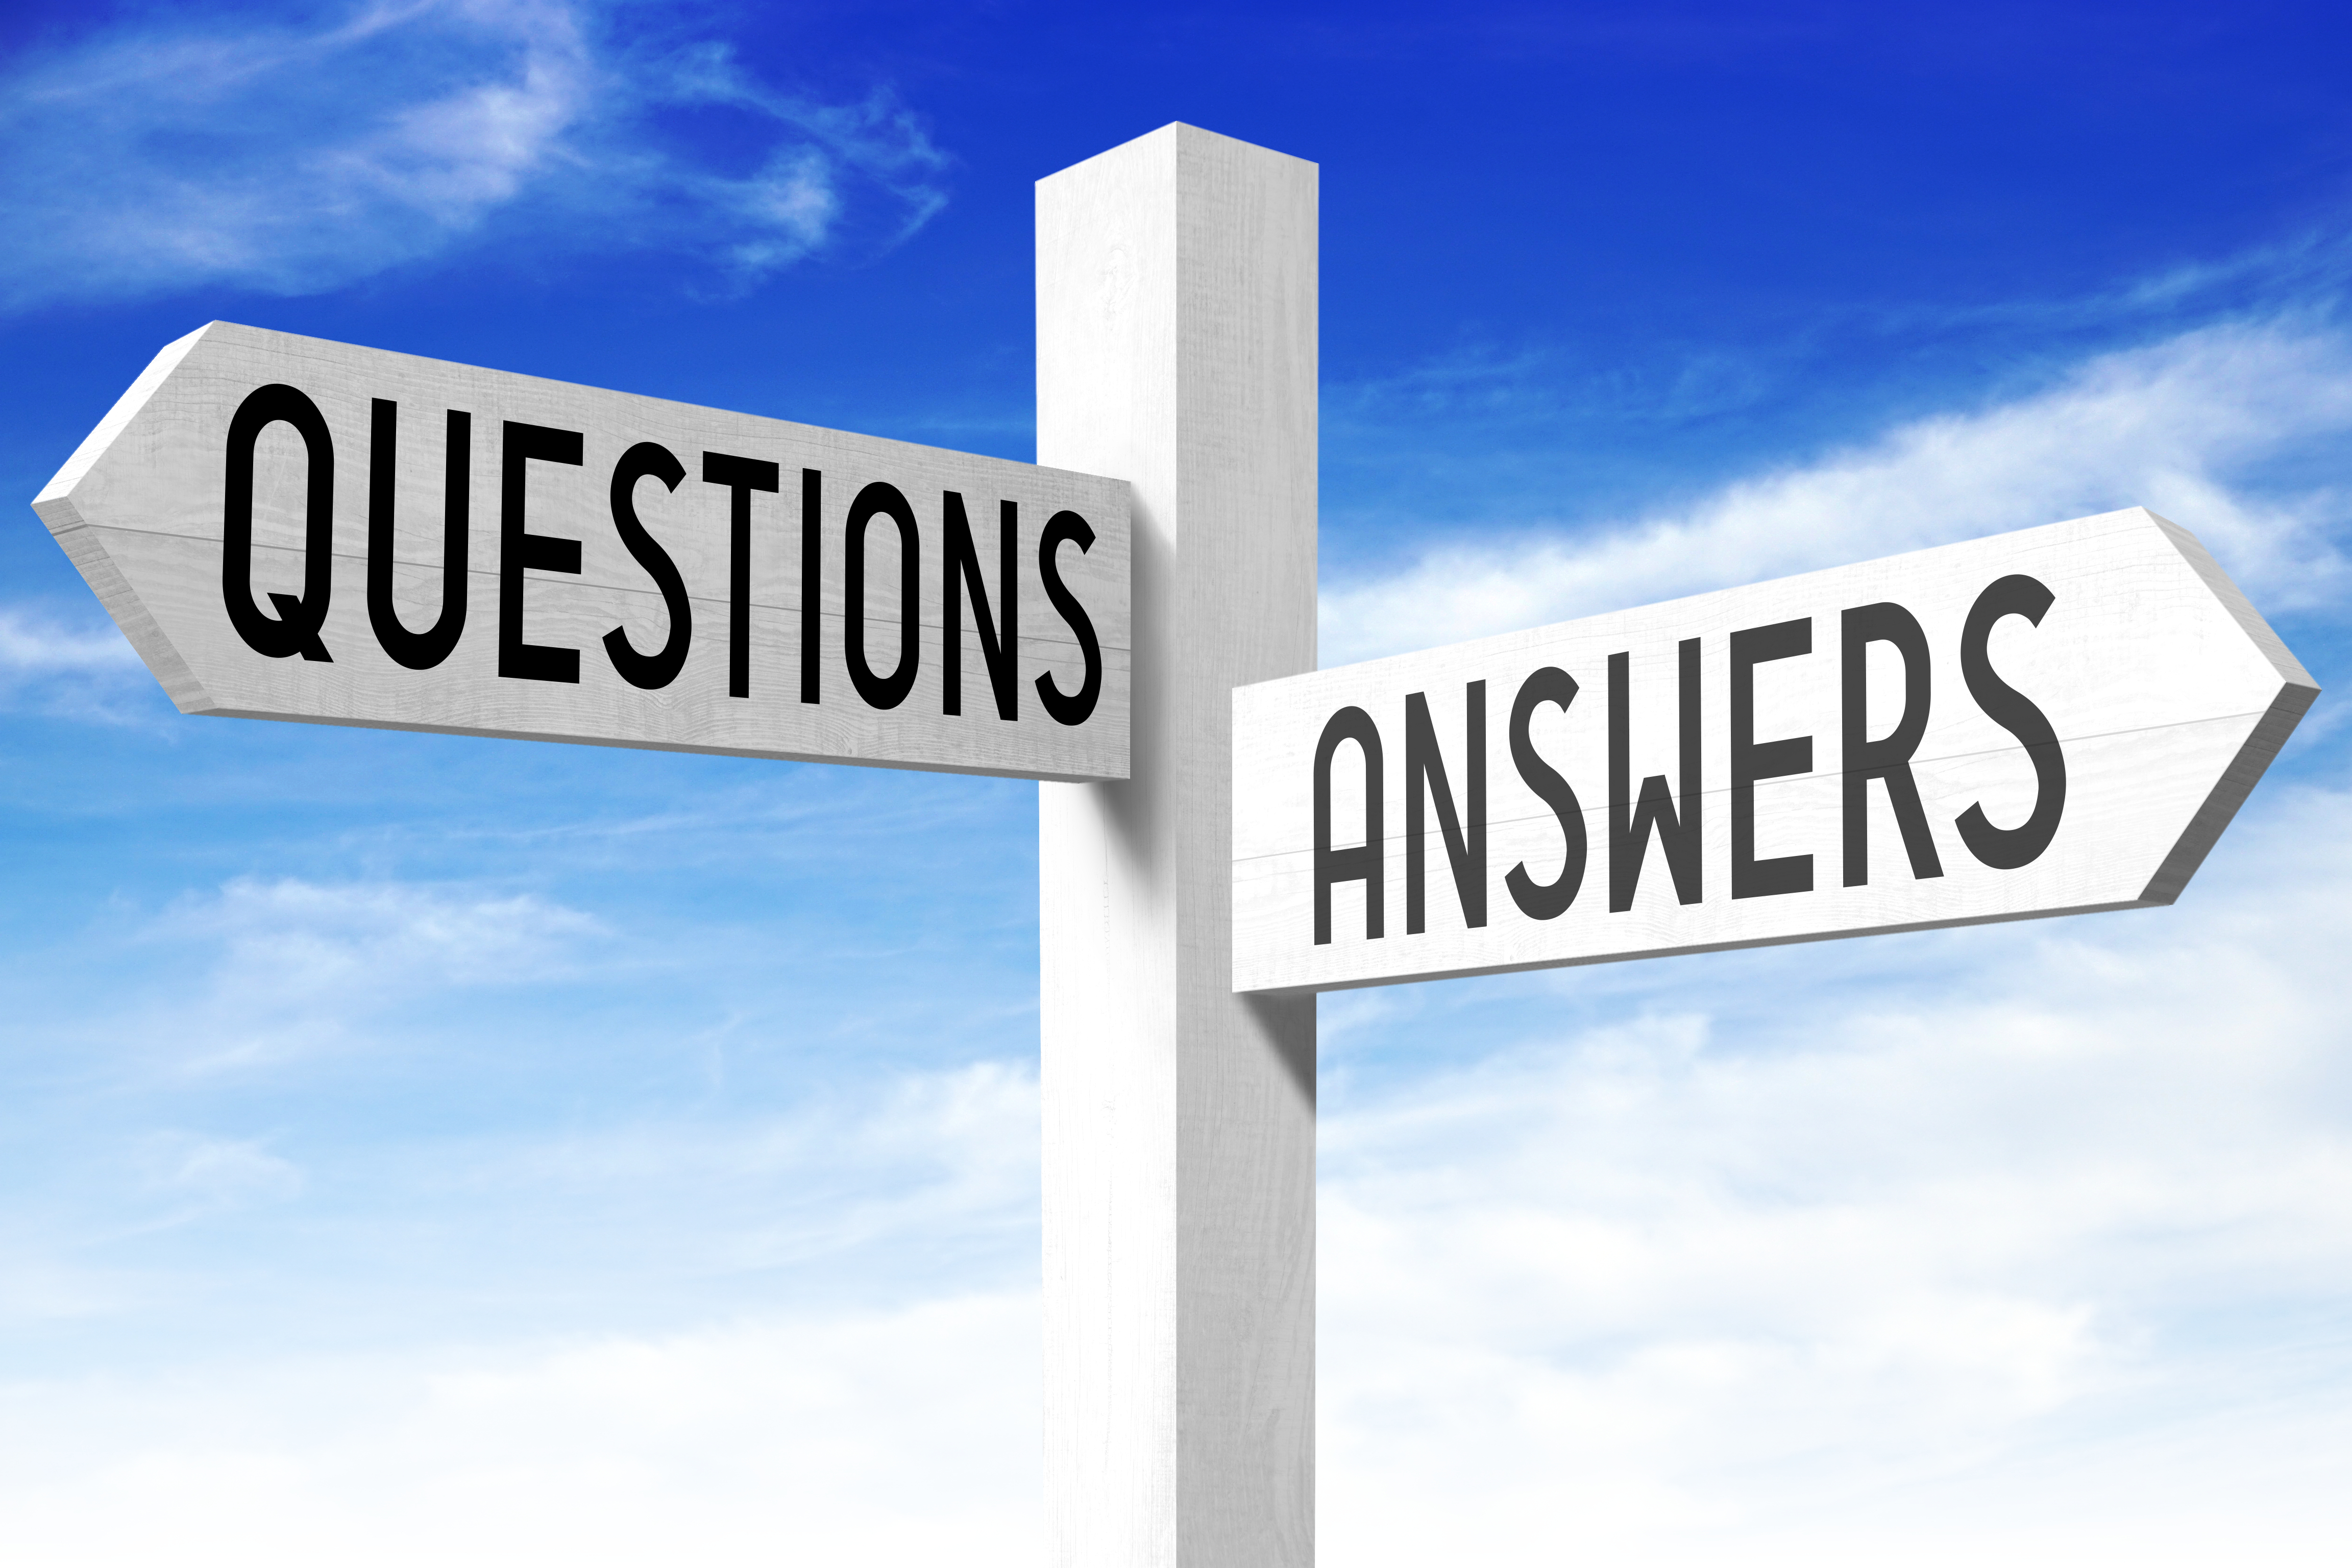 Questions, answers - wooden signpost